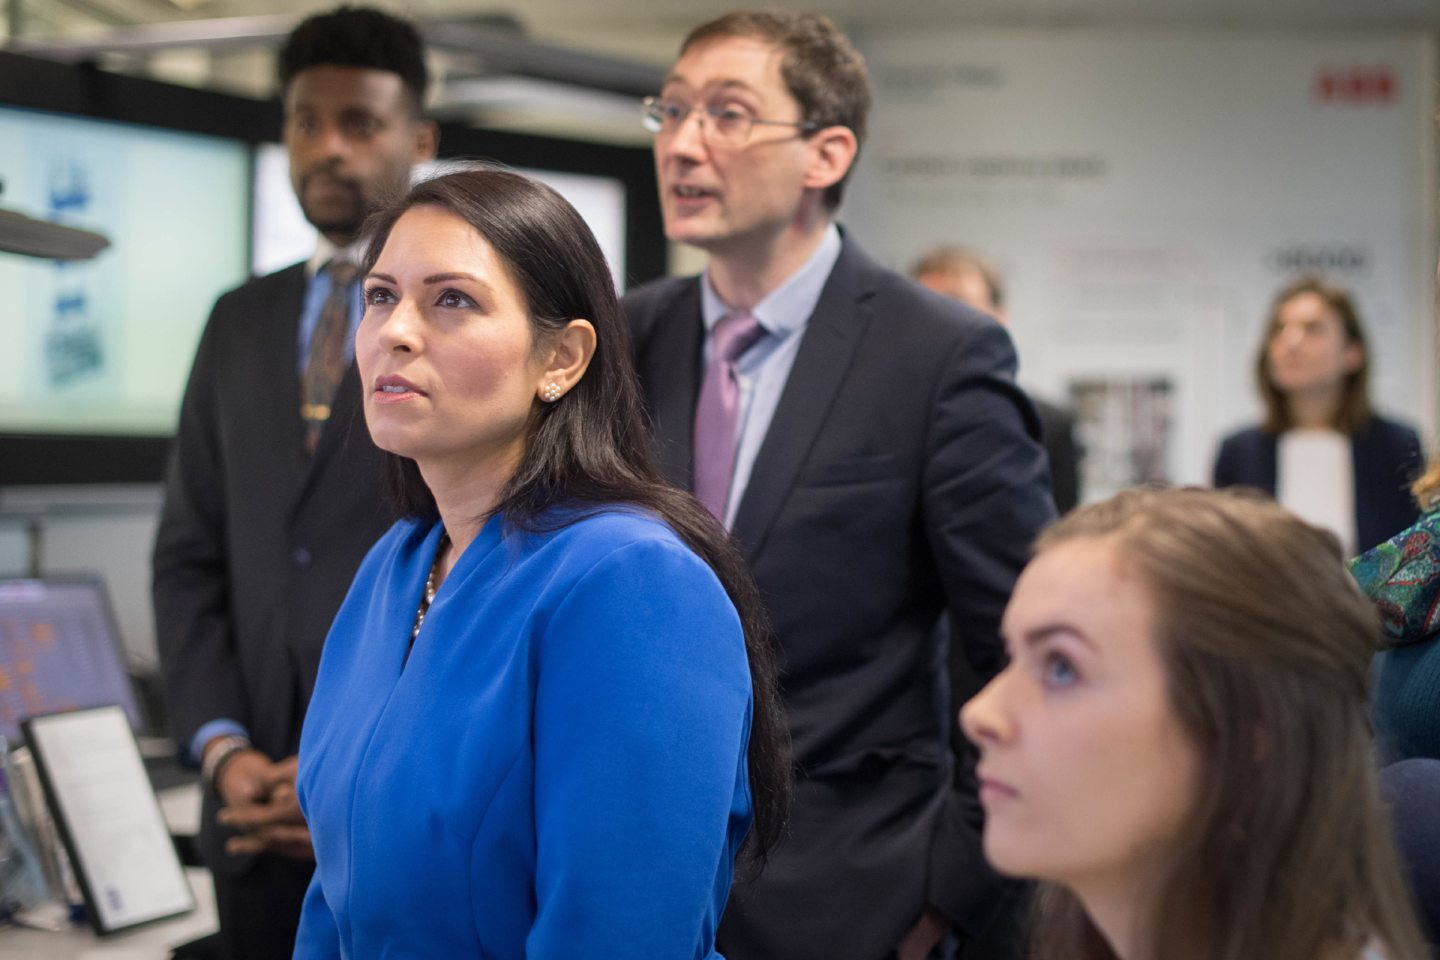 Home Secretary Priti Patel meets students and staff working on 'carbon capture' at Imperial College London in South Kensington, London where she announced plans for a new points-based immigration system.